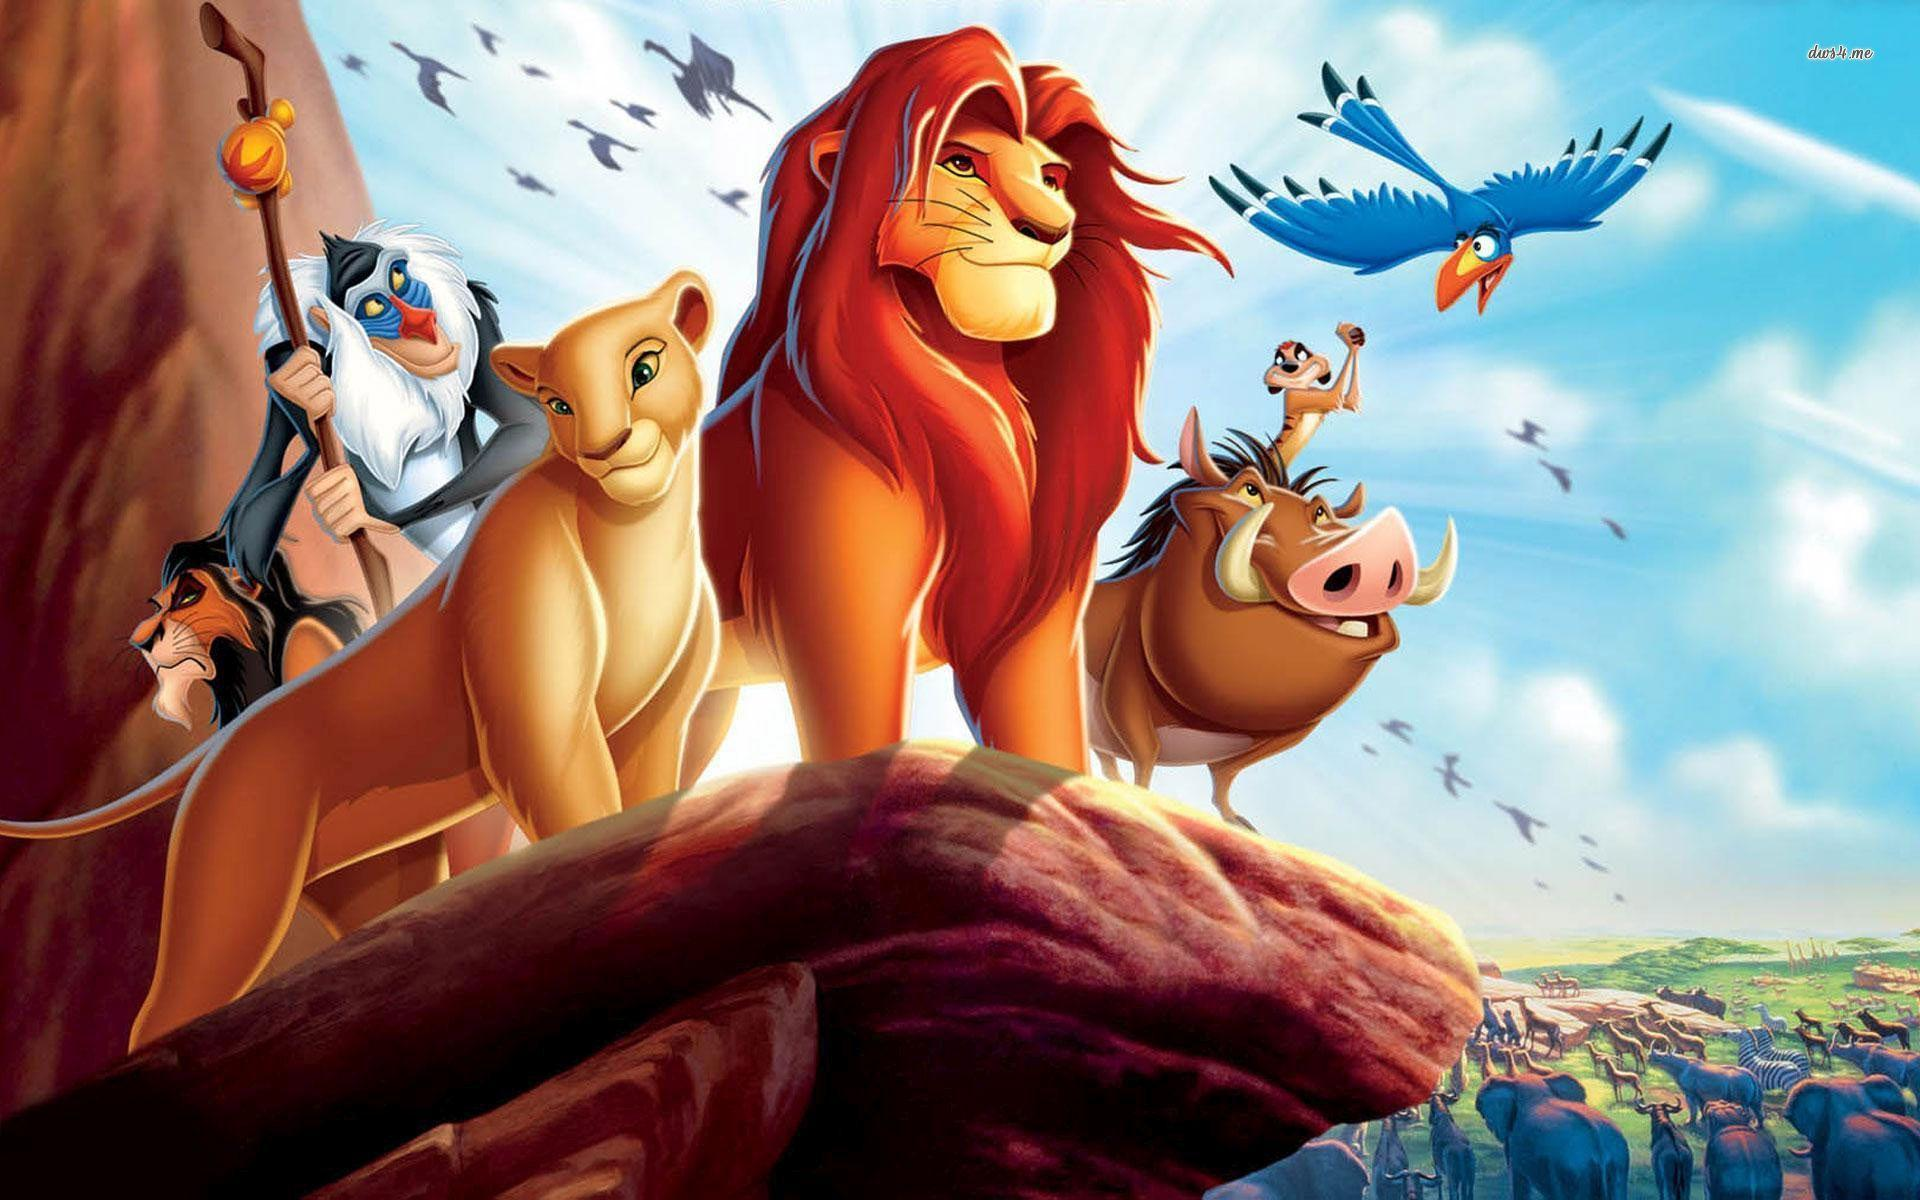 What lion king character do you like best?